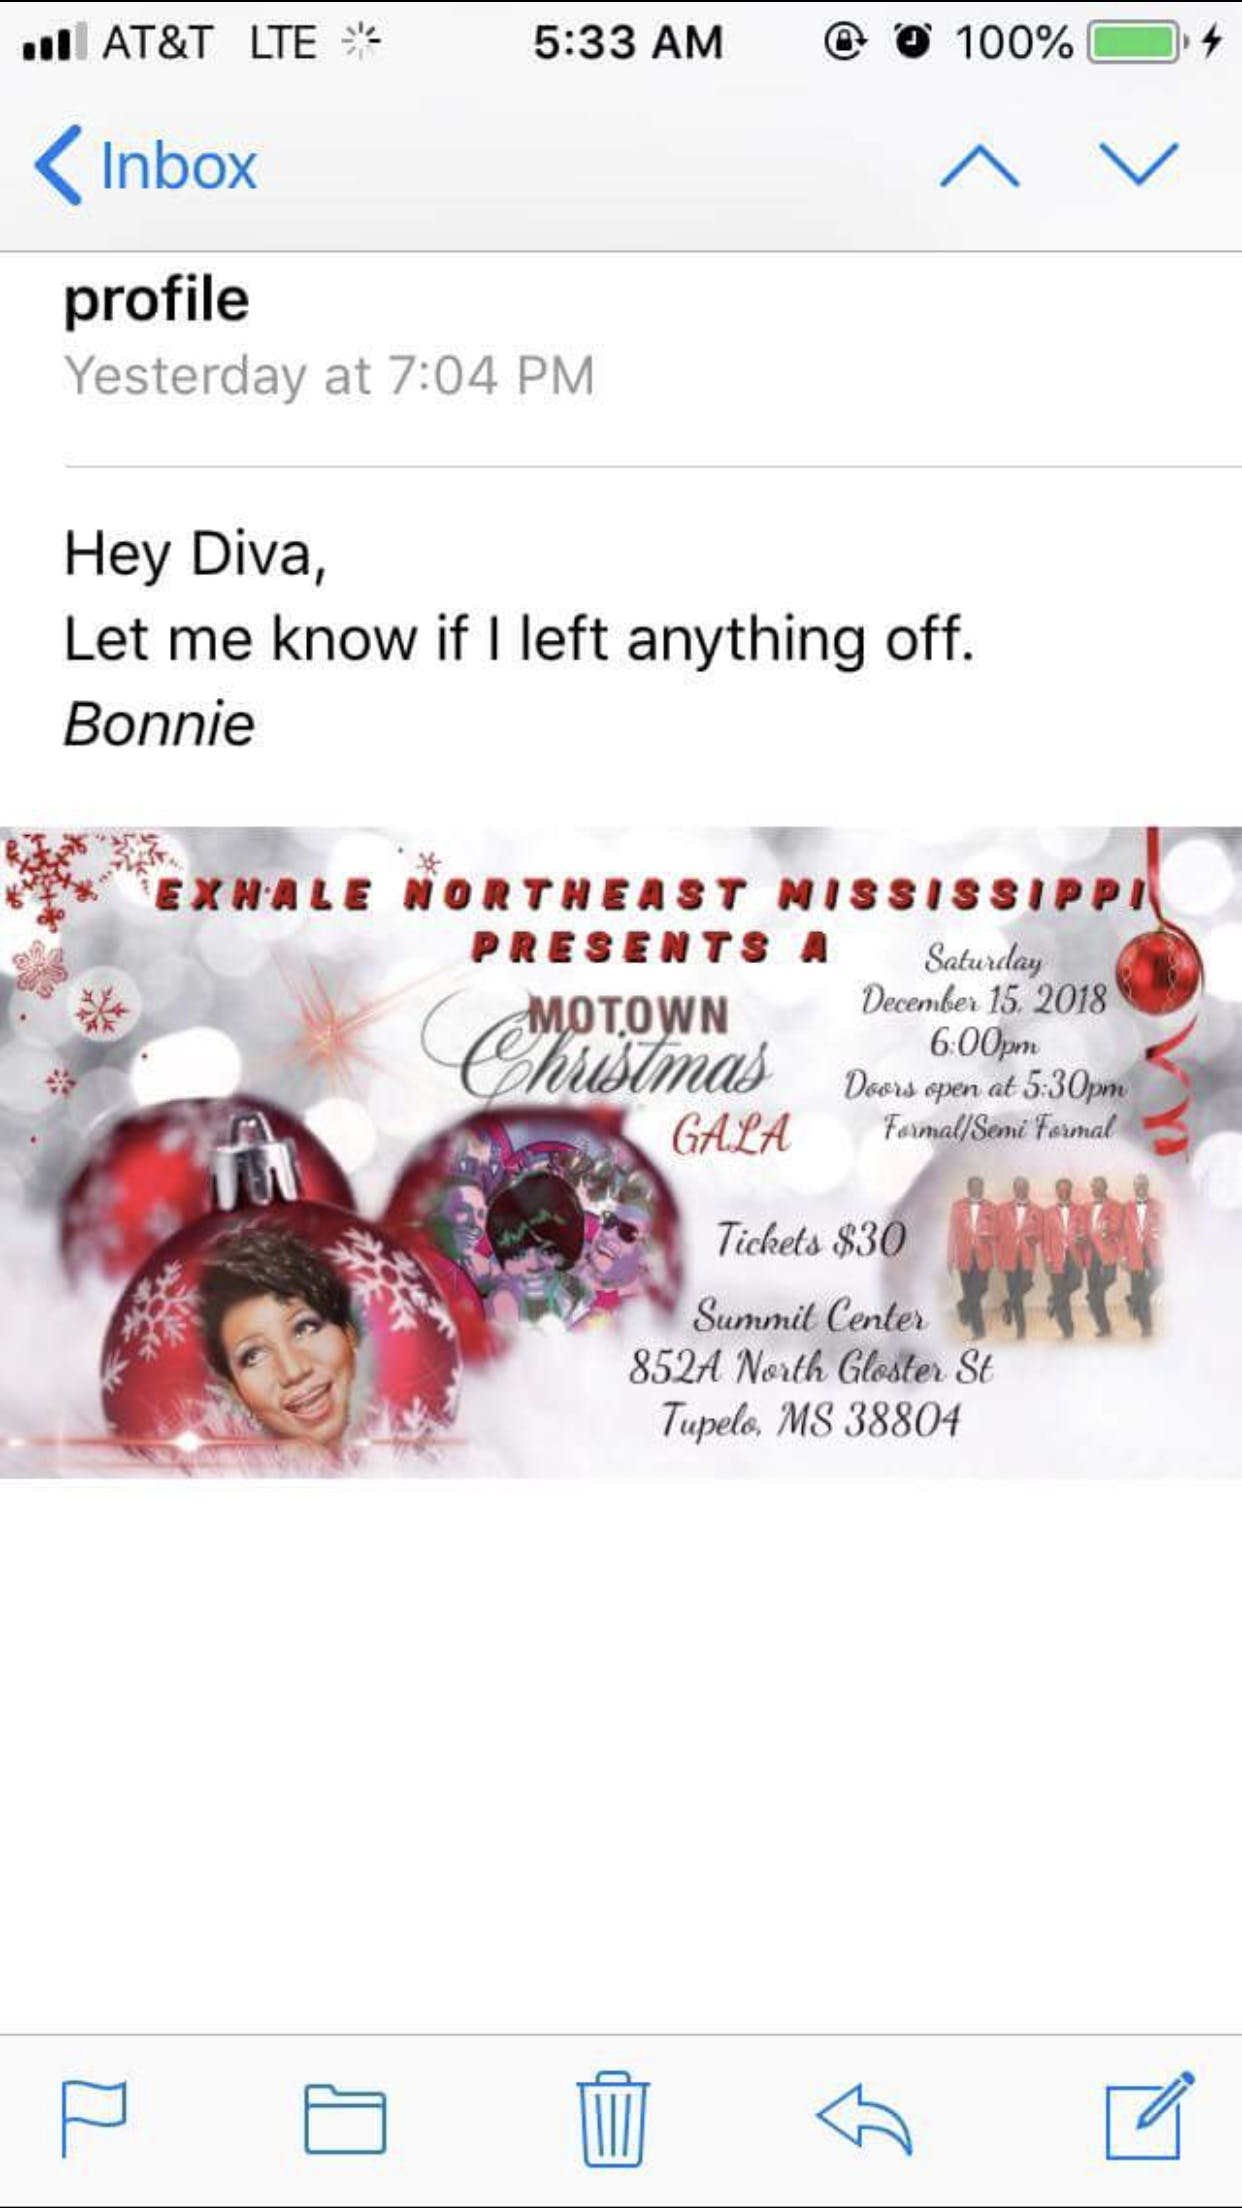 Power to Exhale Northeast Ms presents Motown Christmas - 15 DEC 2018